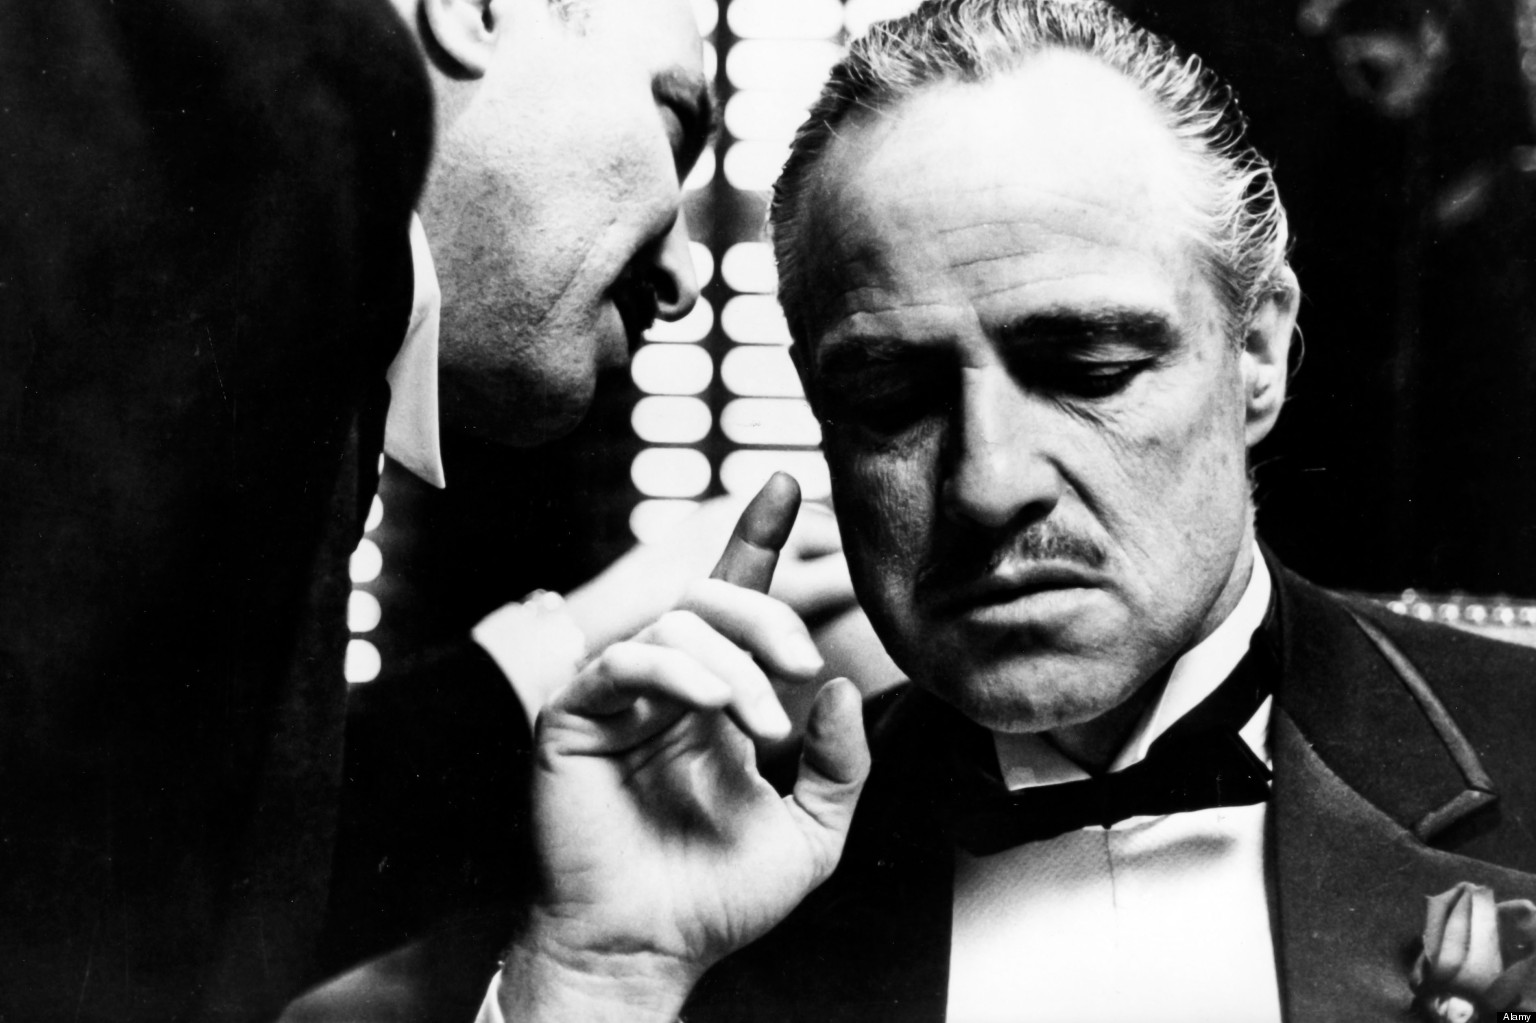 al capone and the great gatsby have a like